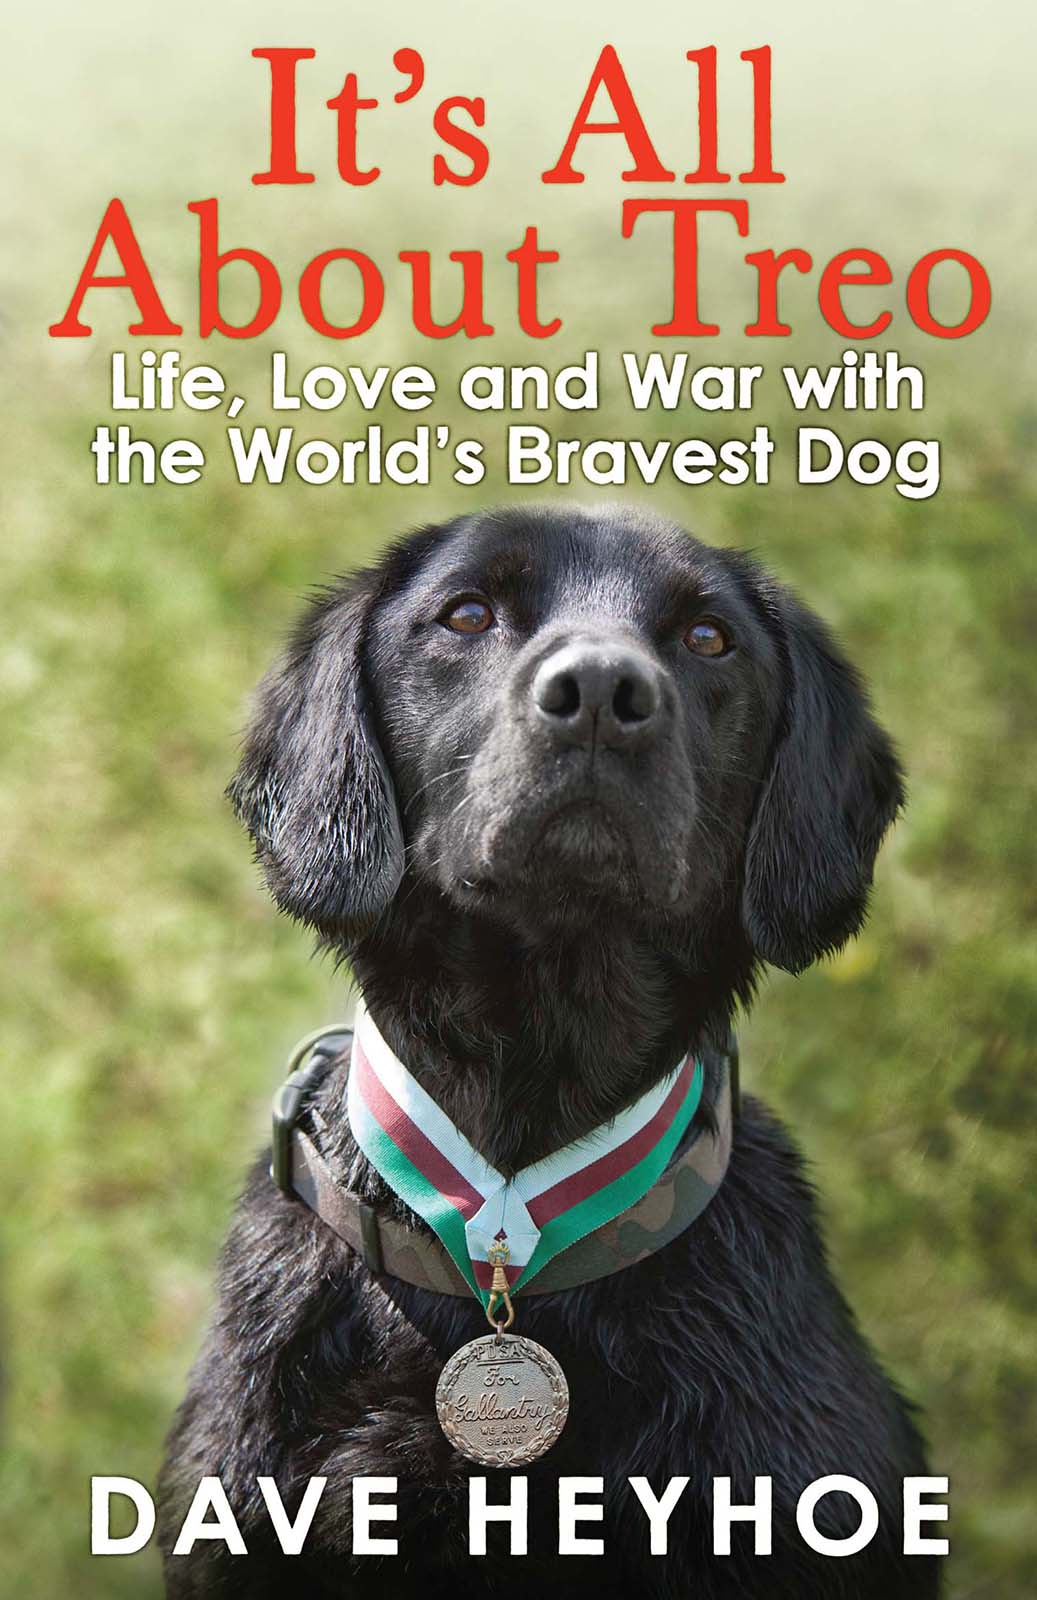 It's All About Treo: Life and War with the World's Bravest Dog Life and War with the World's Bravest Dog